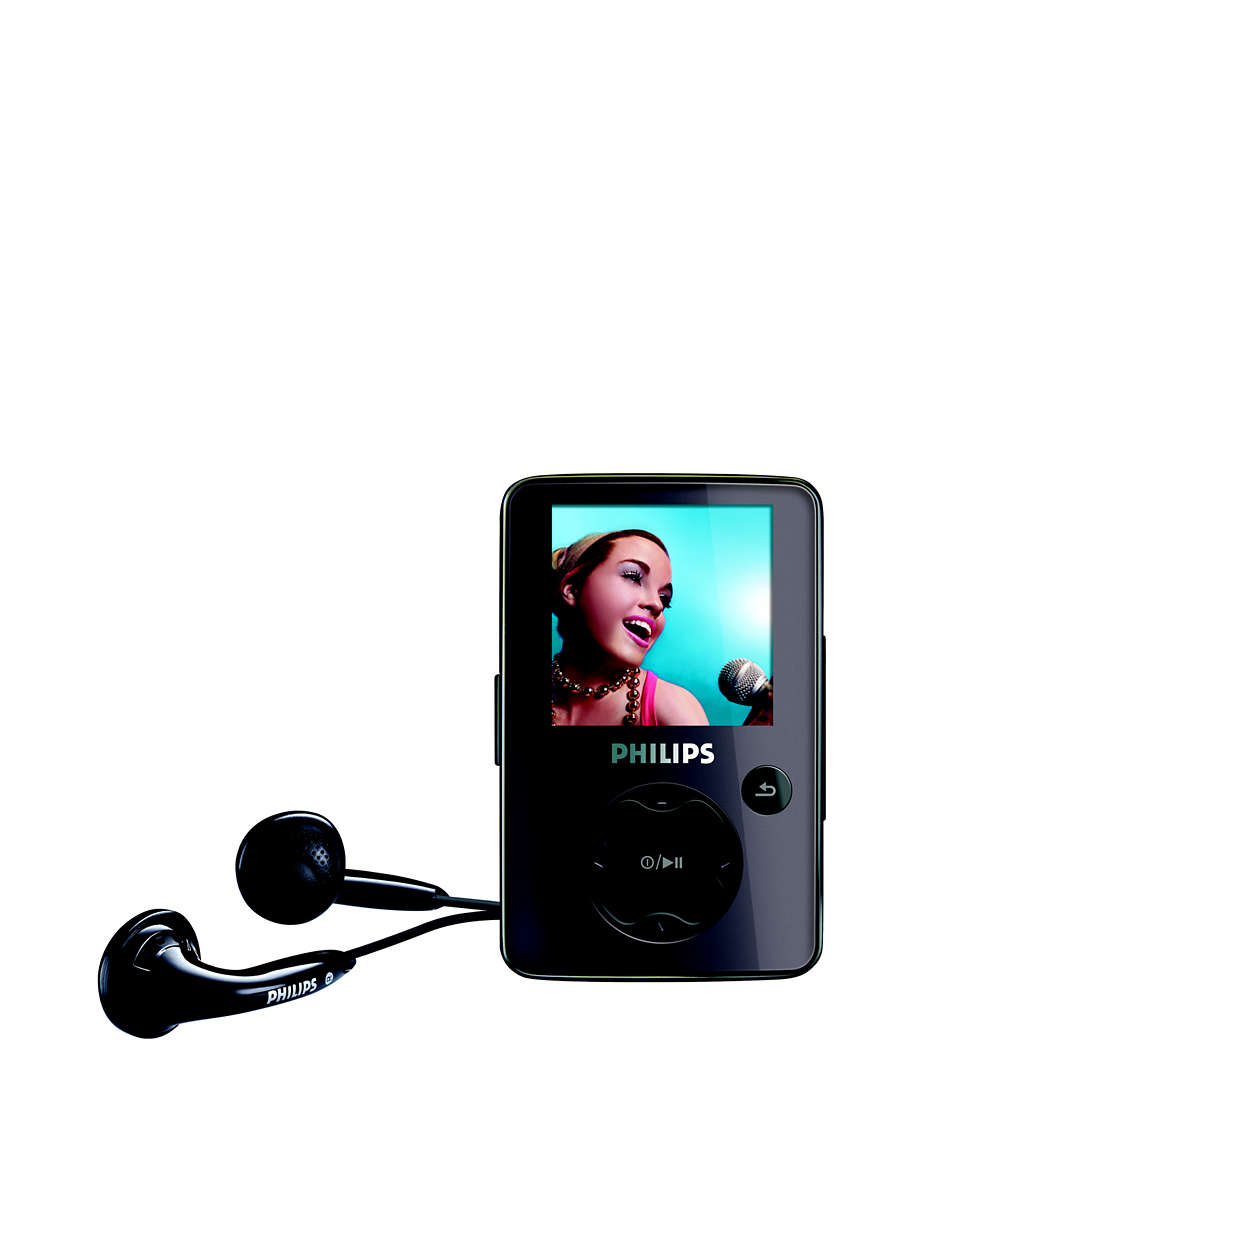 philips ipod gogear 2gb software free download